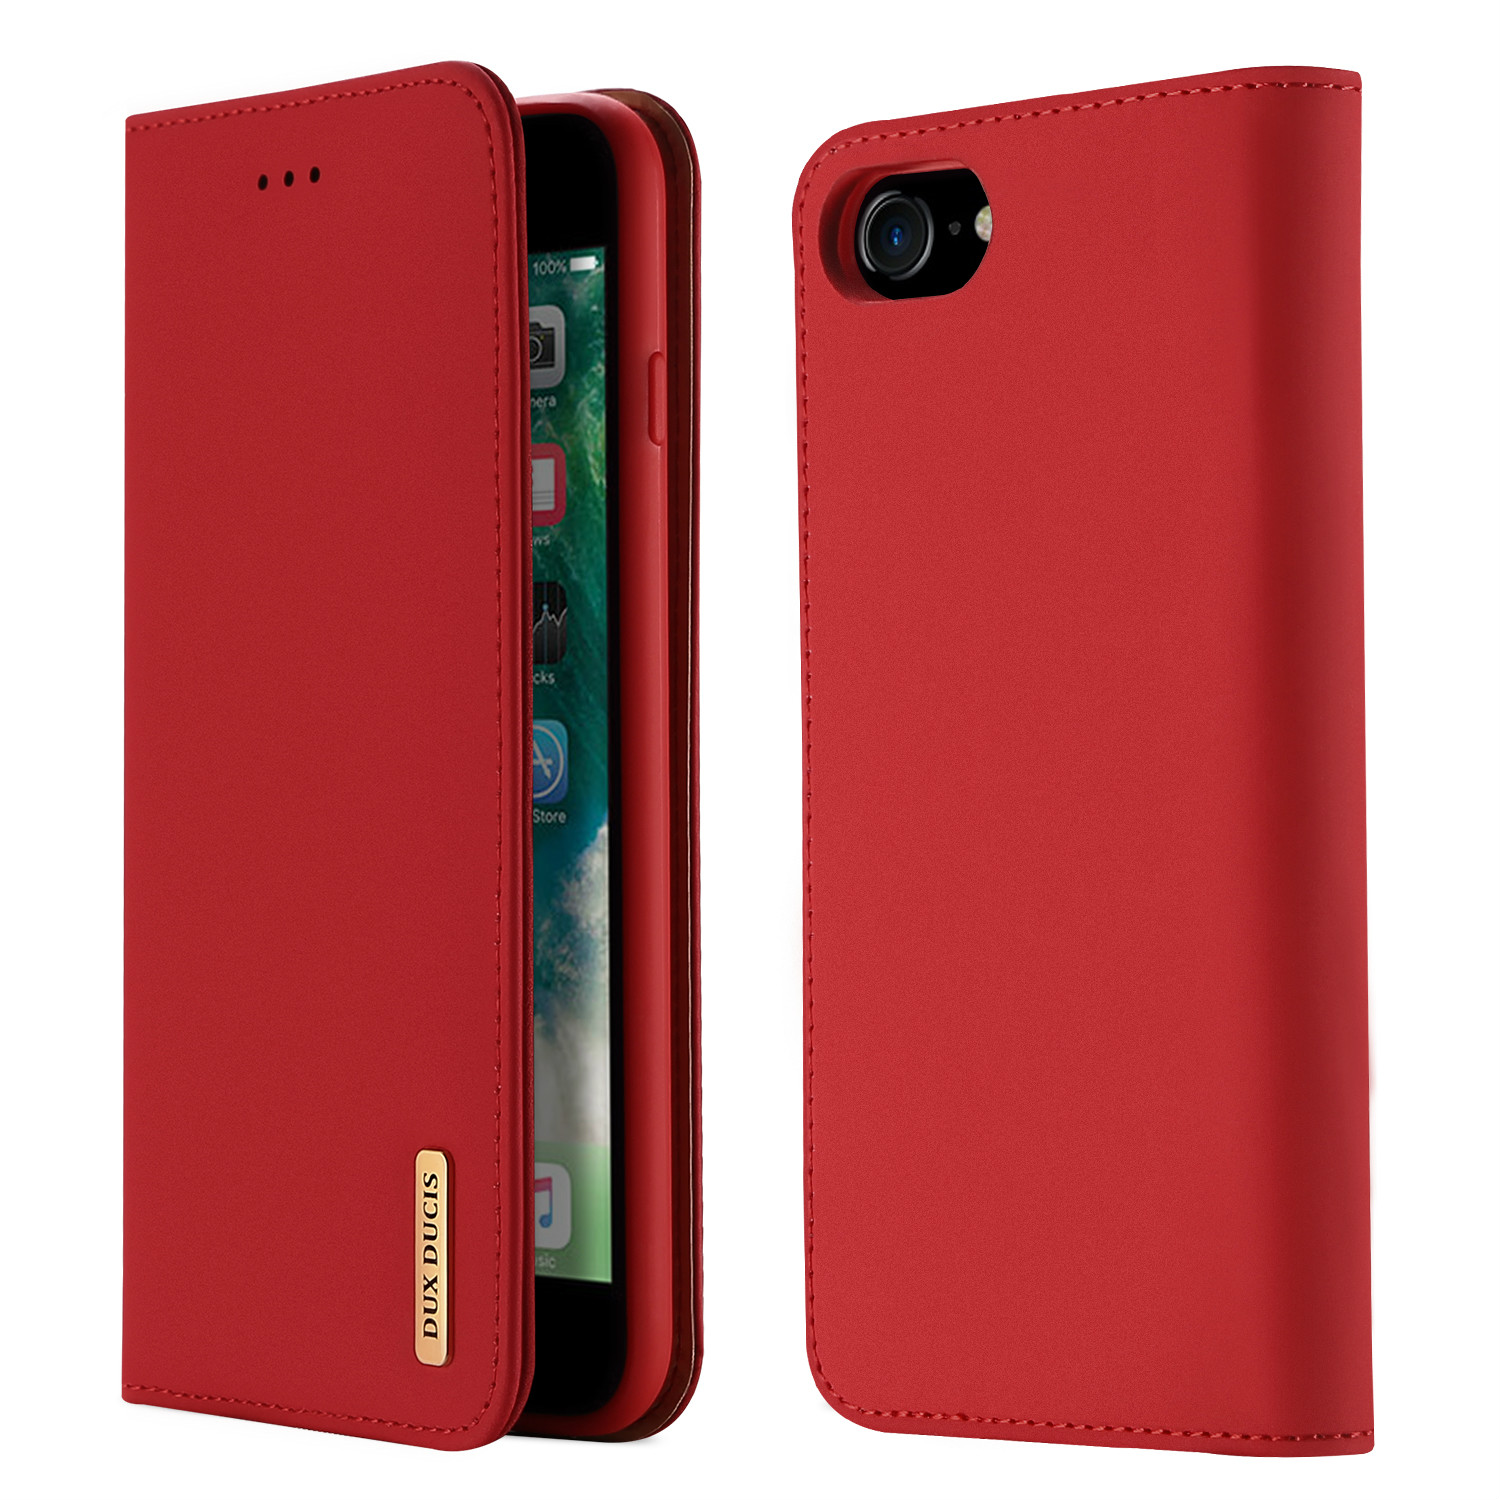 DUX DUCIS For iPhone 7/8 Luxury Genuine Leather Magnetic Flip Cover Full Protective Case with Bracket Card Slot red